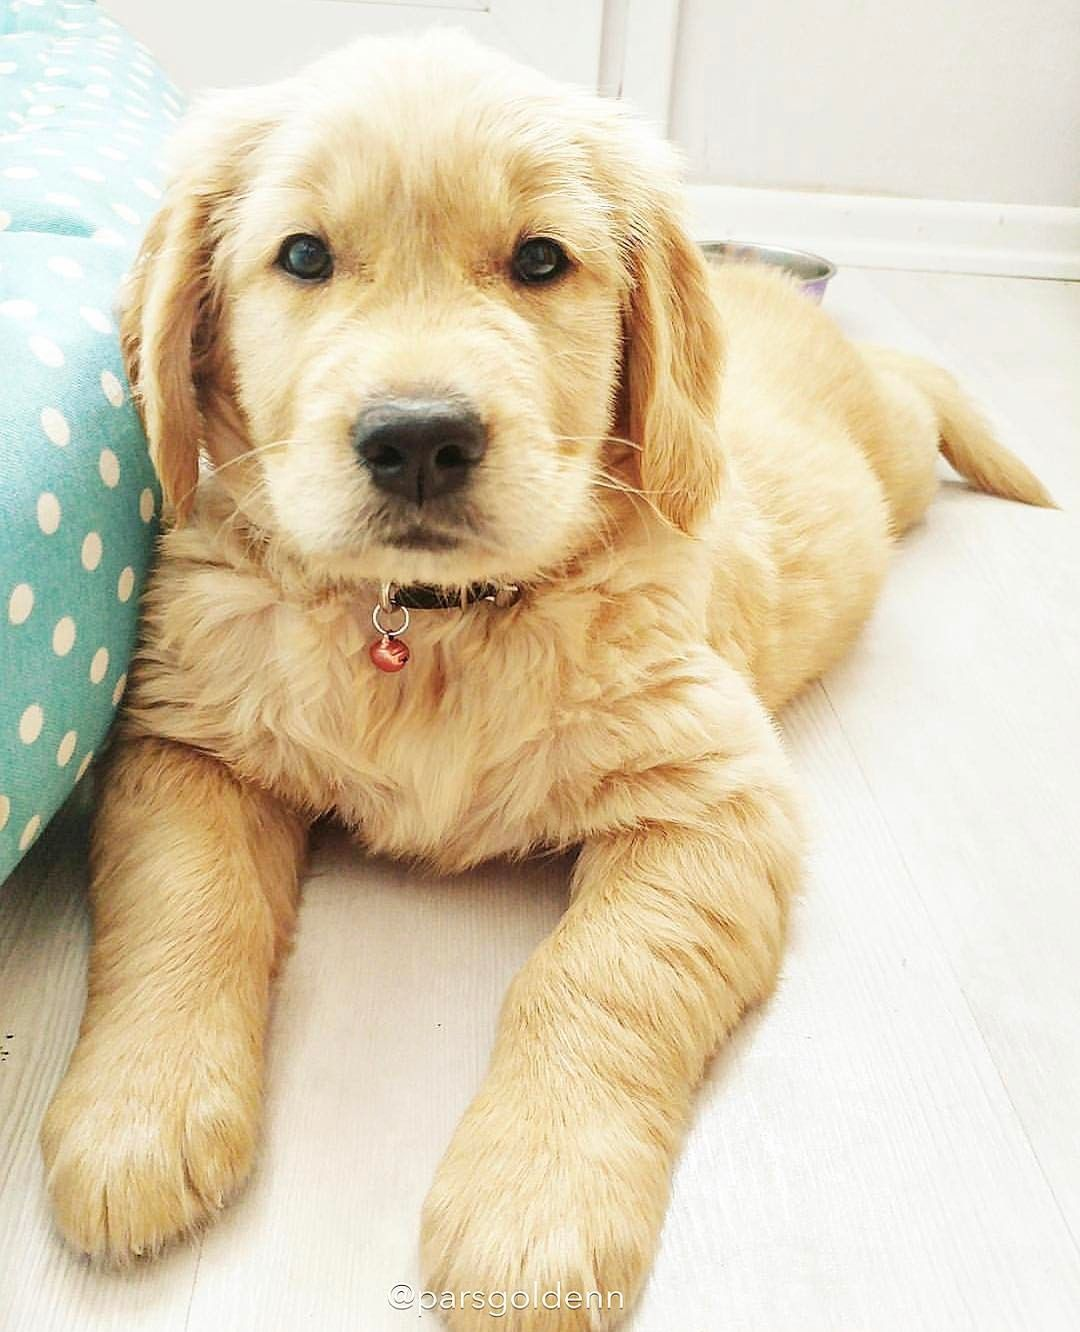 Cute Golden Retriever Puppy Pure Gold Dog Breeds Dogs Puppies